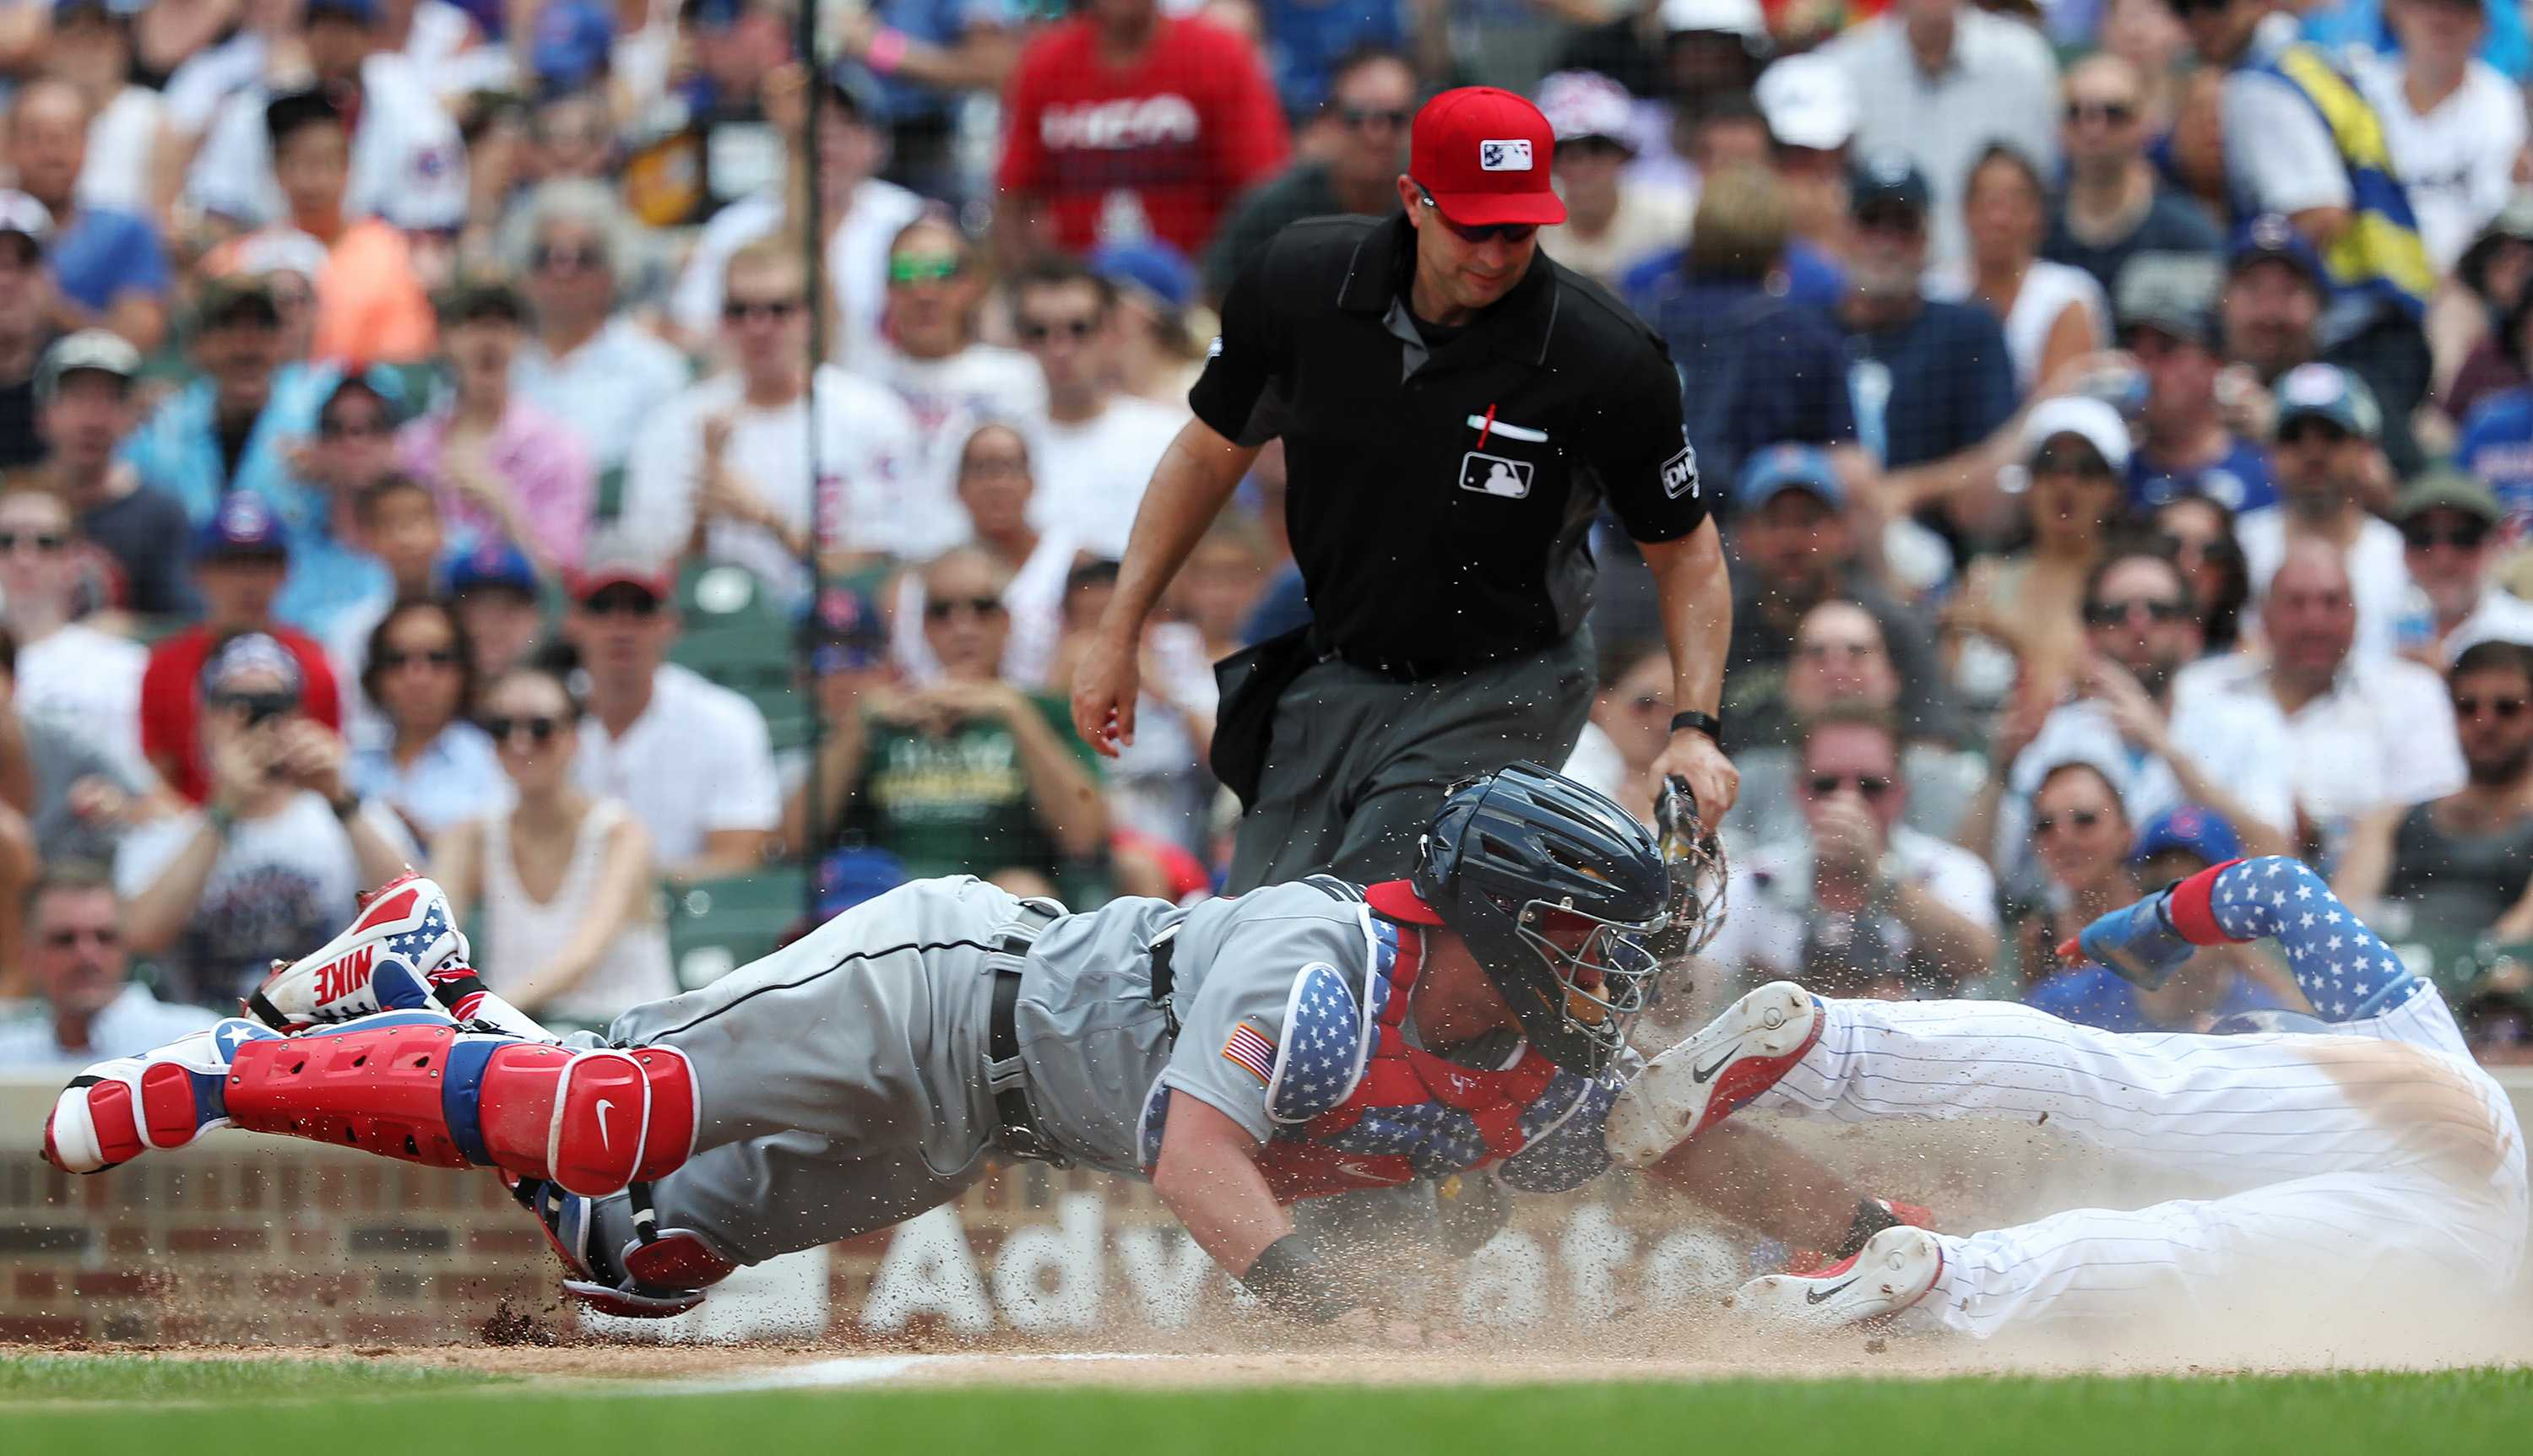 Chicago Cubs second baseman Javier Baez (9), right, steals home plate for a run as Detroit Tigers catcher James McCann (34) reaches for the late tag in the fourth inning at Wrigley Field Wednesday, July 4, 2018, in Chicago. (John J. Kim/Chicago Tribune/TNS)